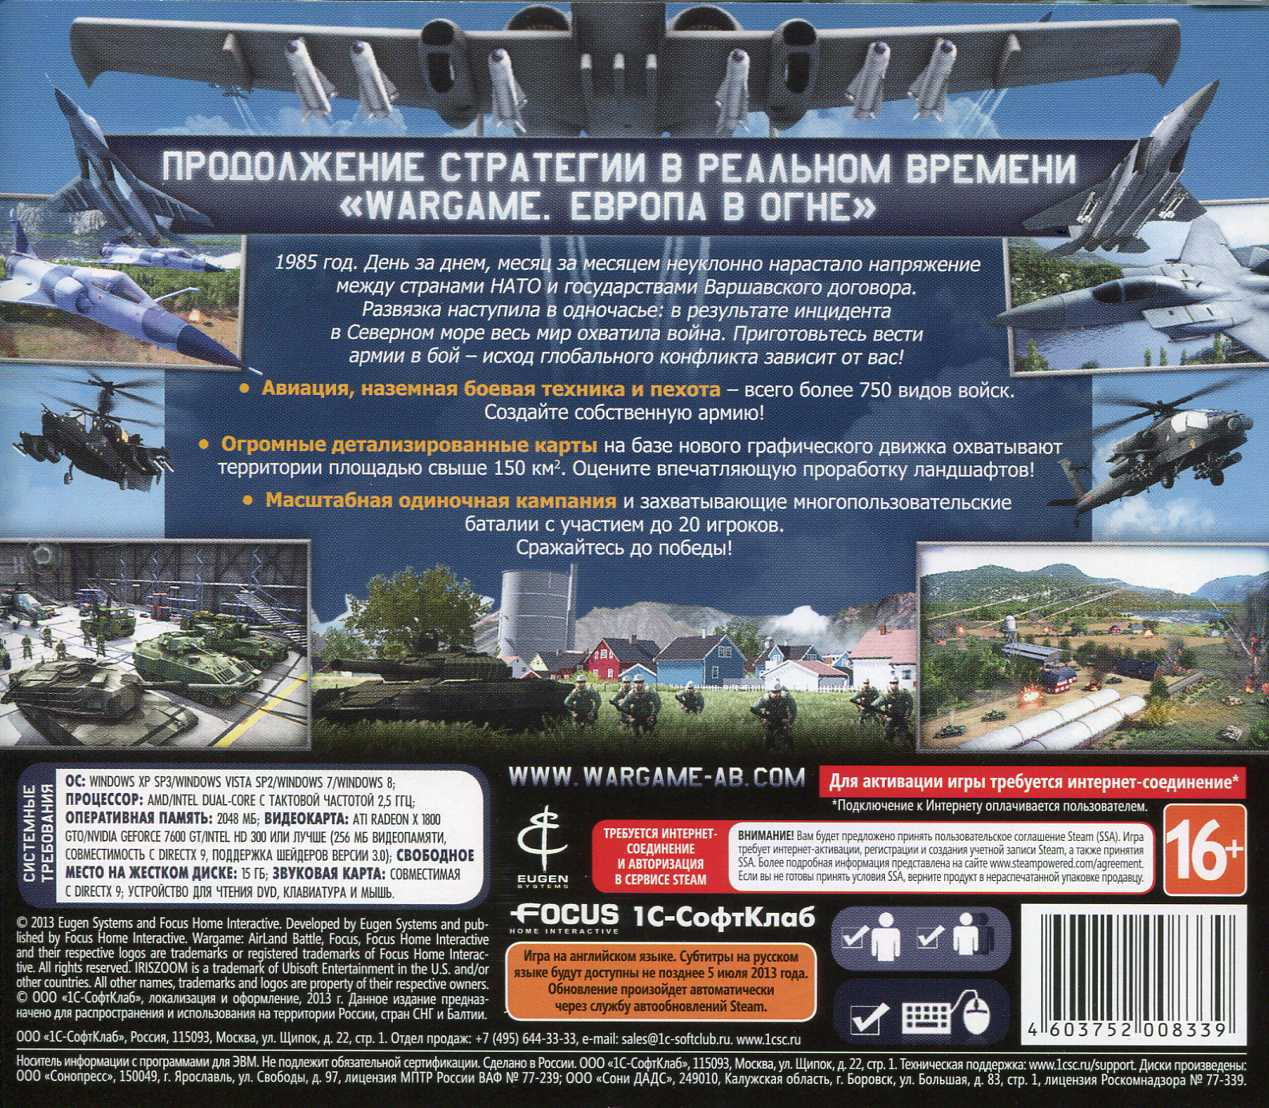 Wargame: AirLand Battle (activation key in Steam)